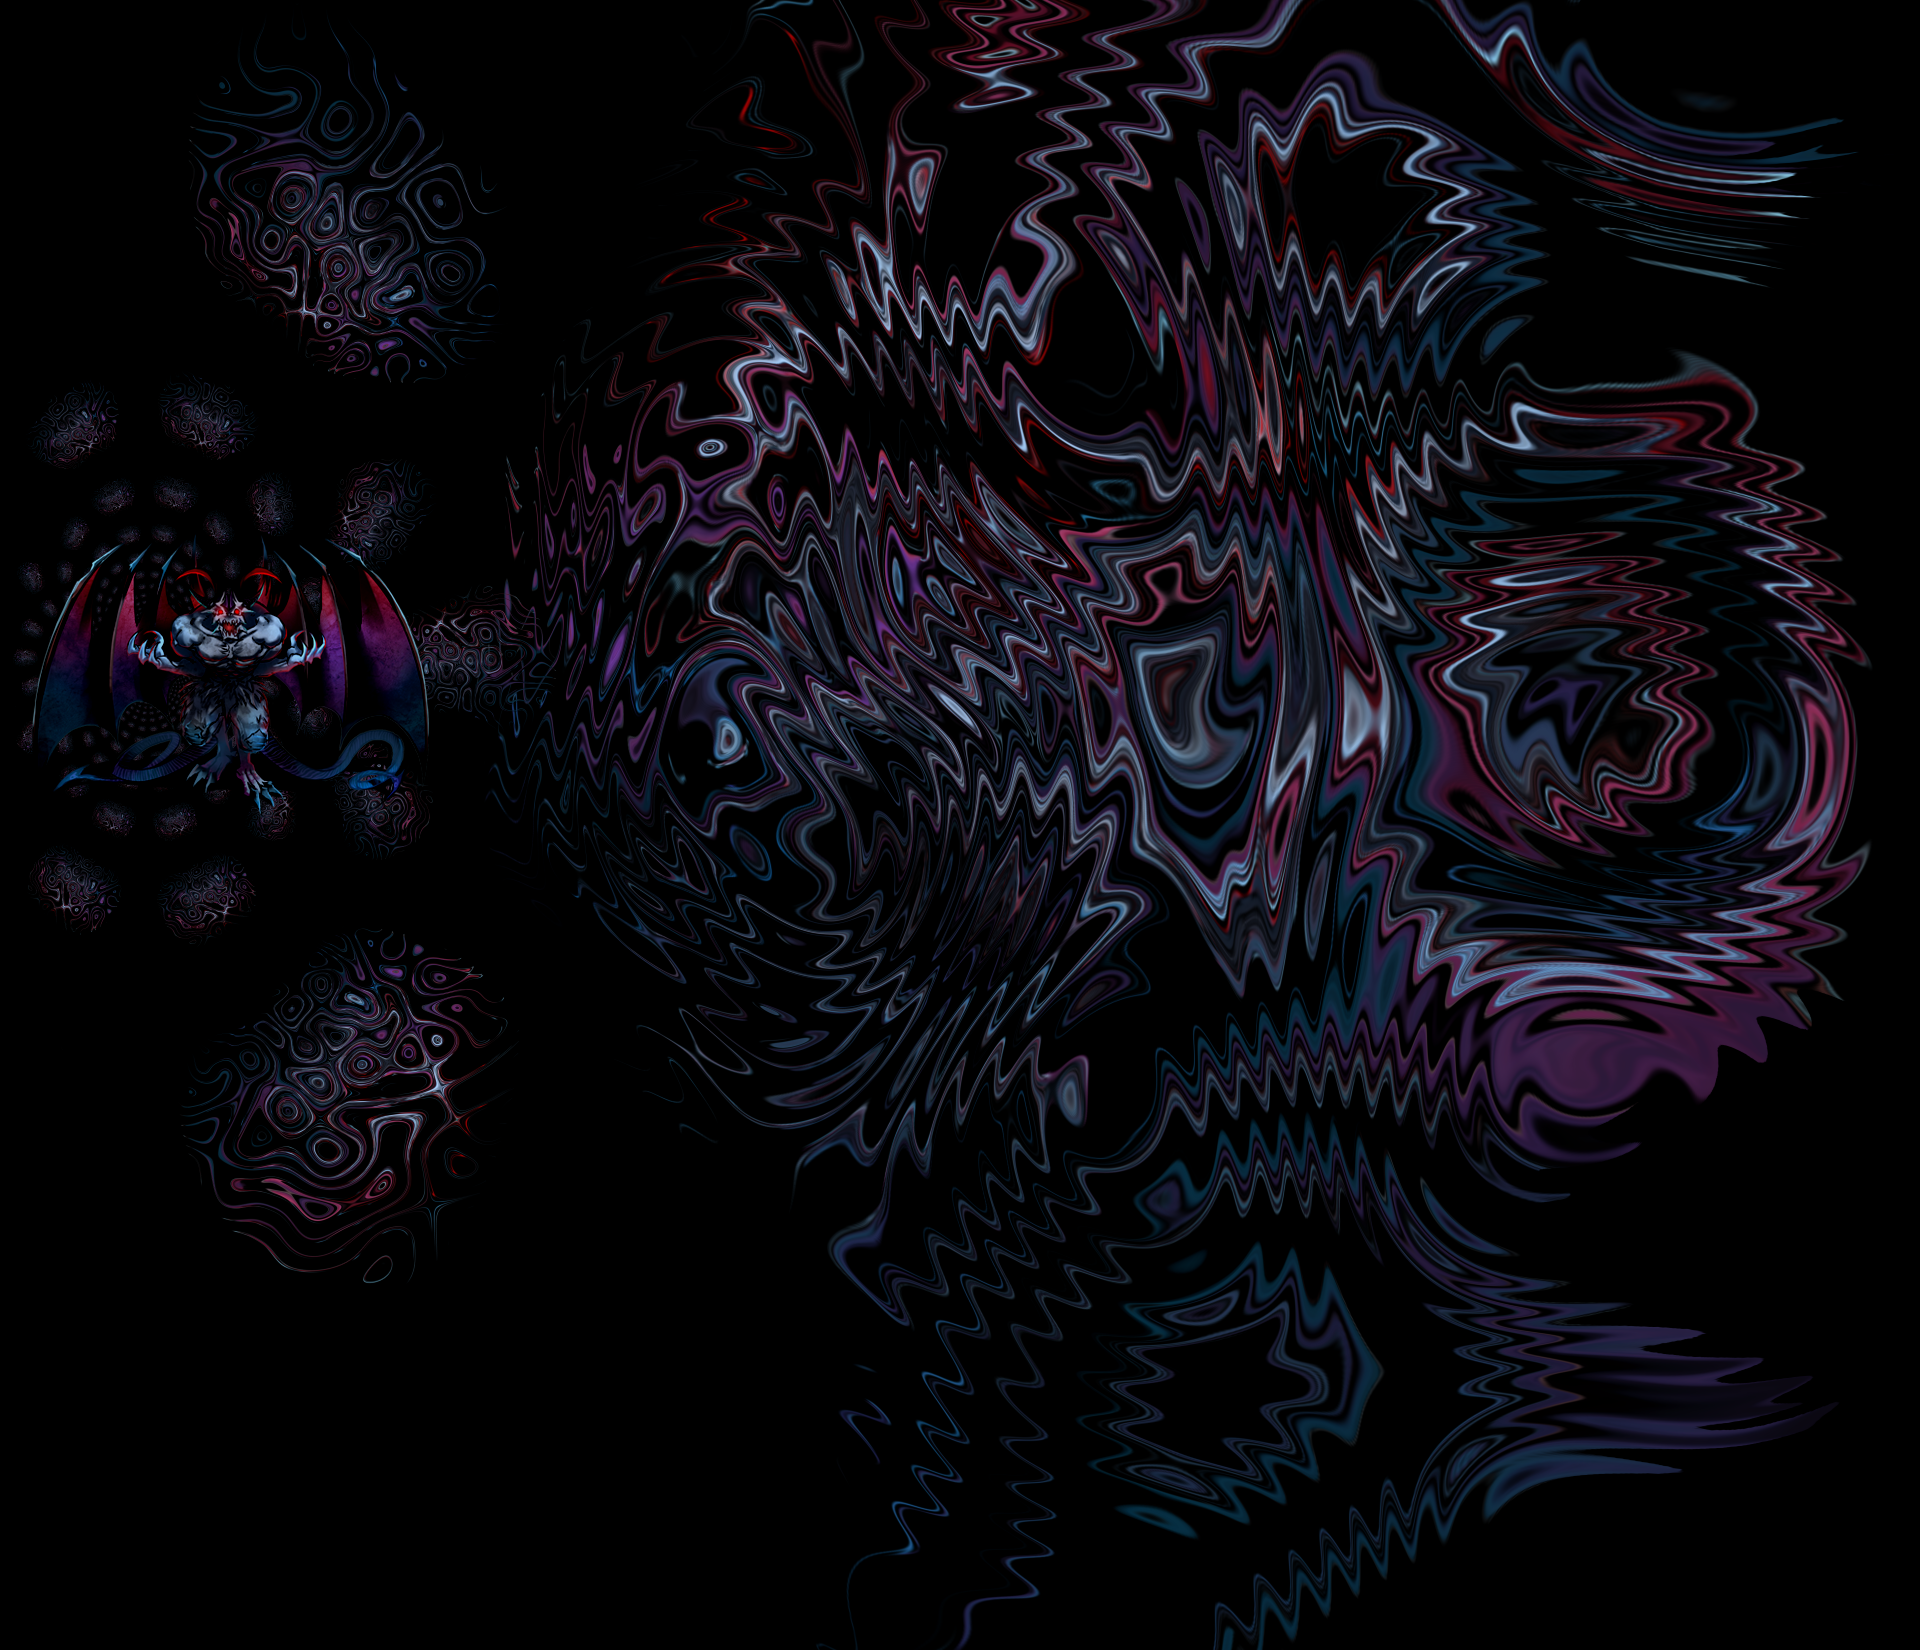 Demonic background sf wallpaper fitured and related categories demonic background 2560x1440 background voltagebd Images